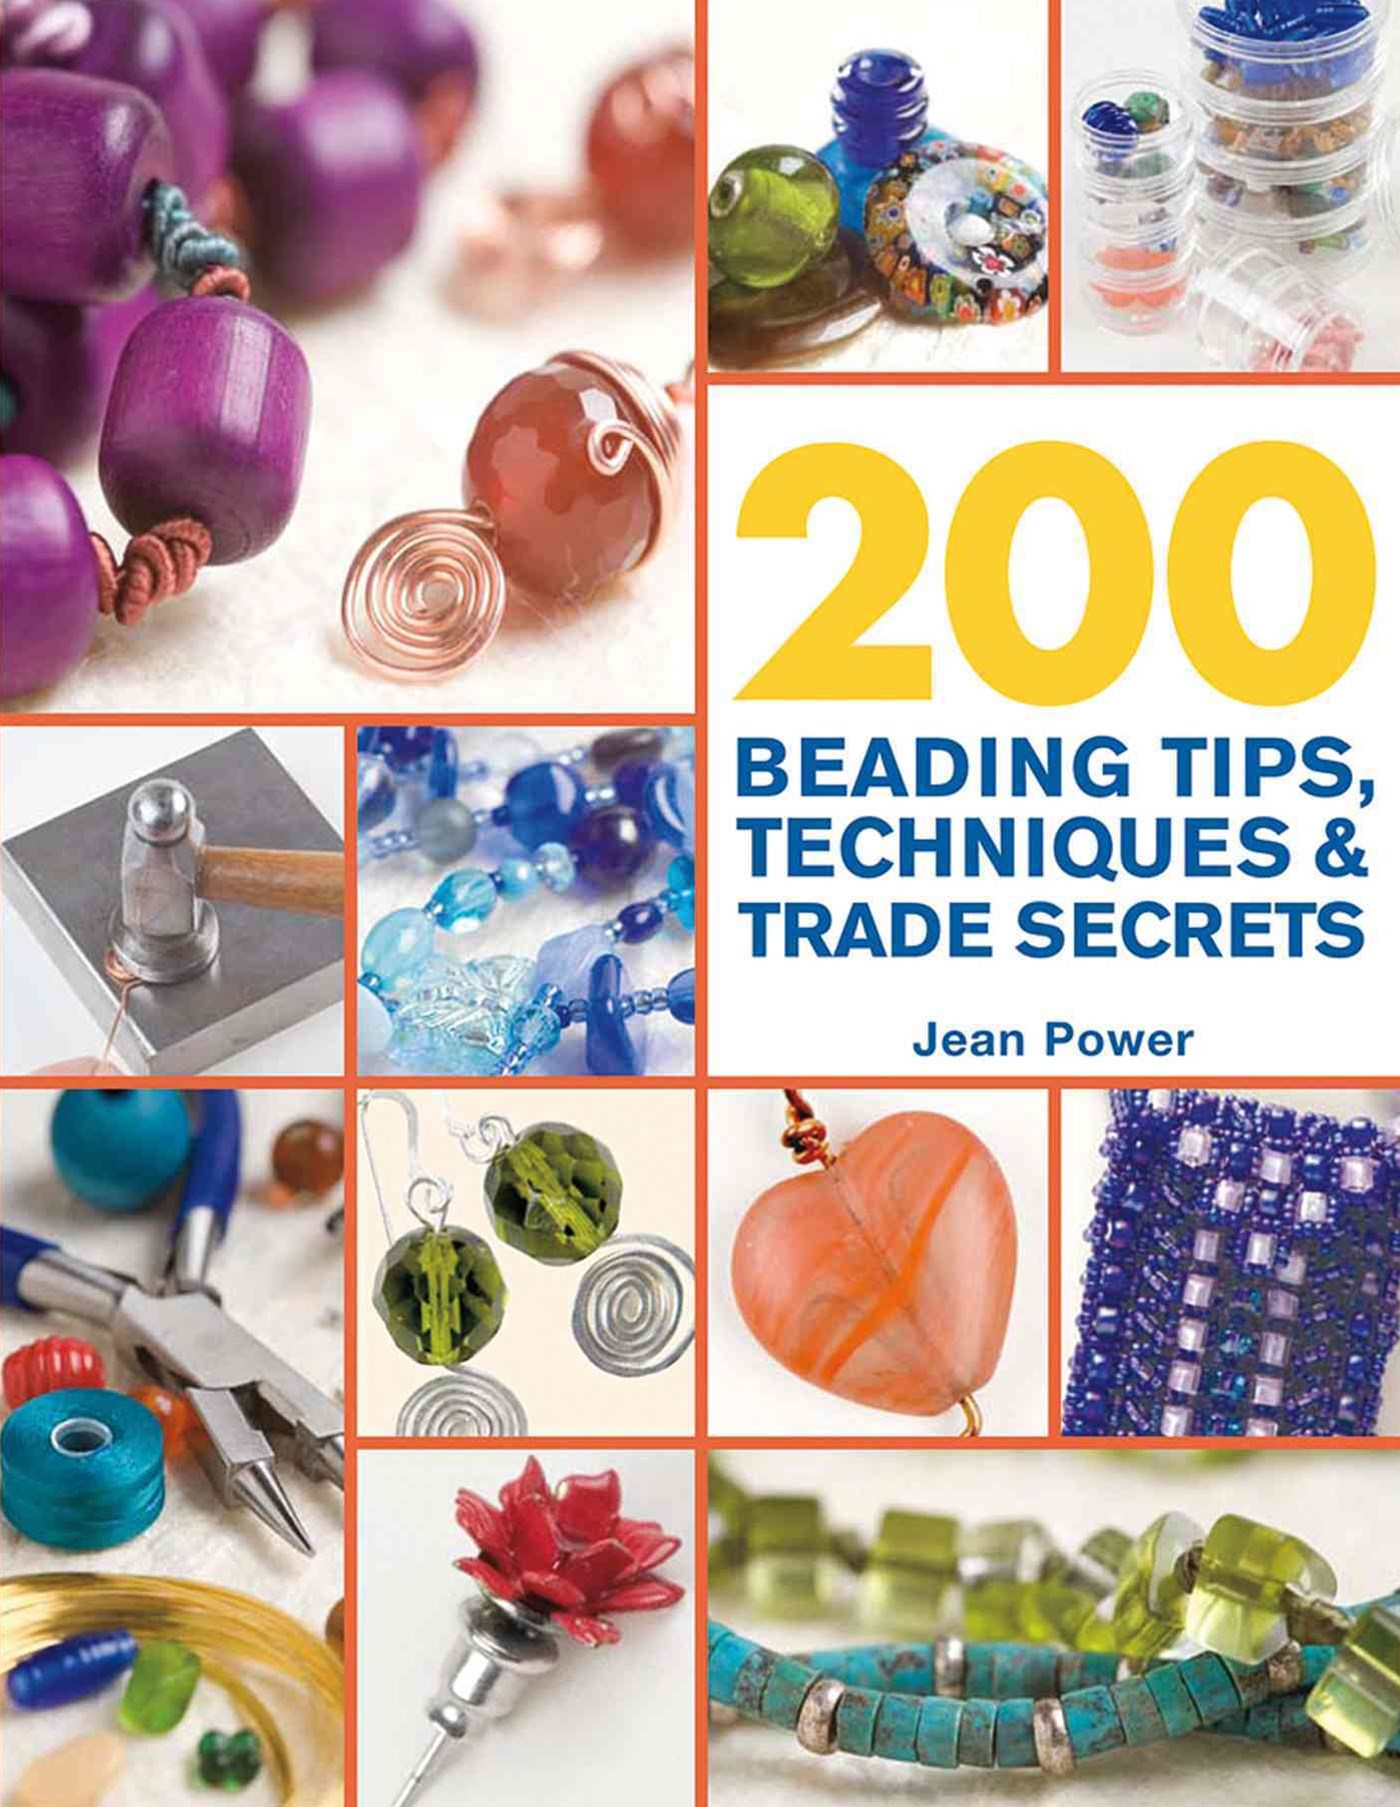 200 Beading Tips, Techniques and Trade Secrets